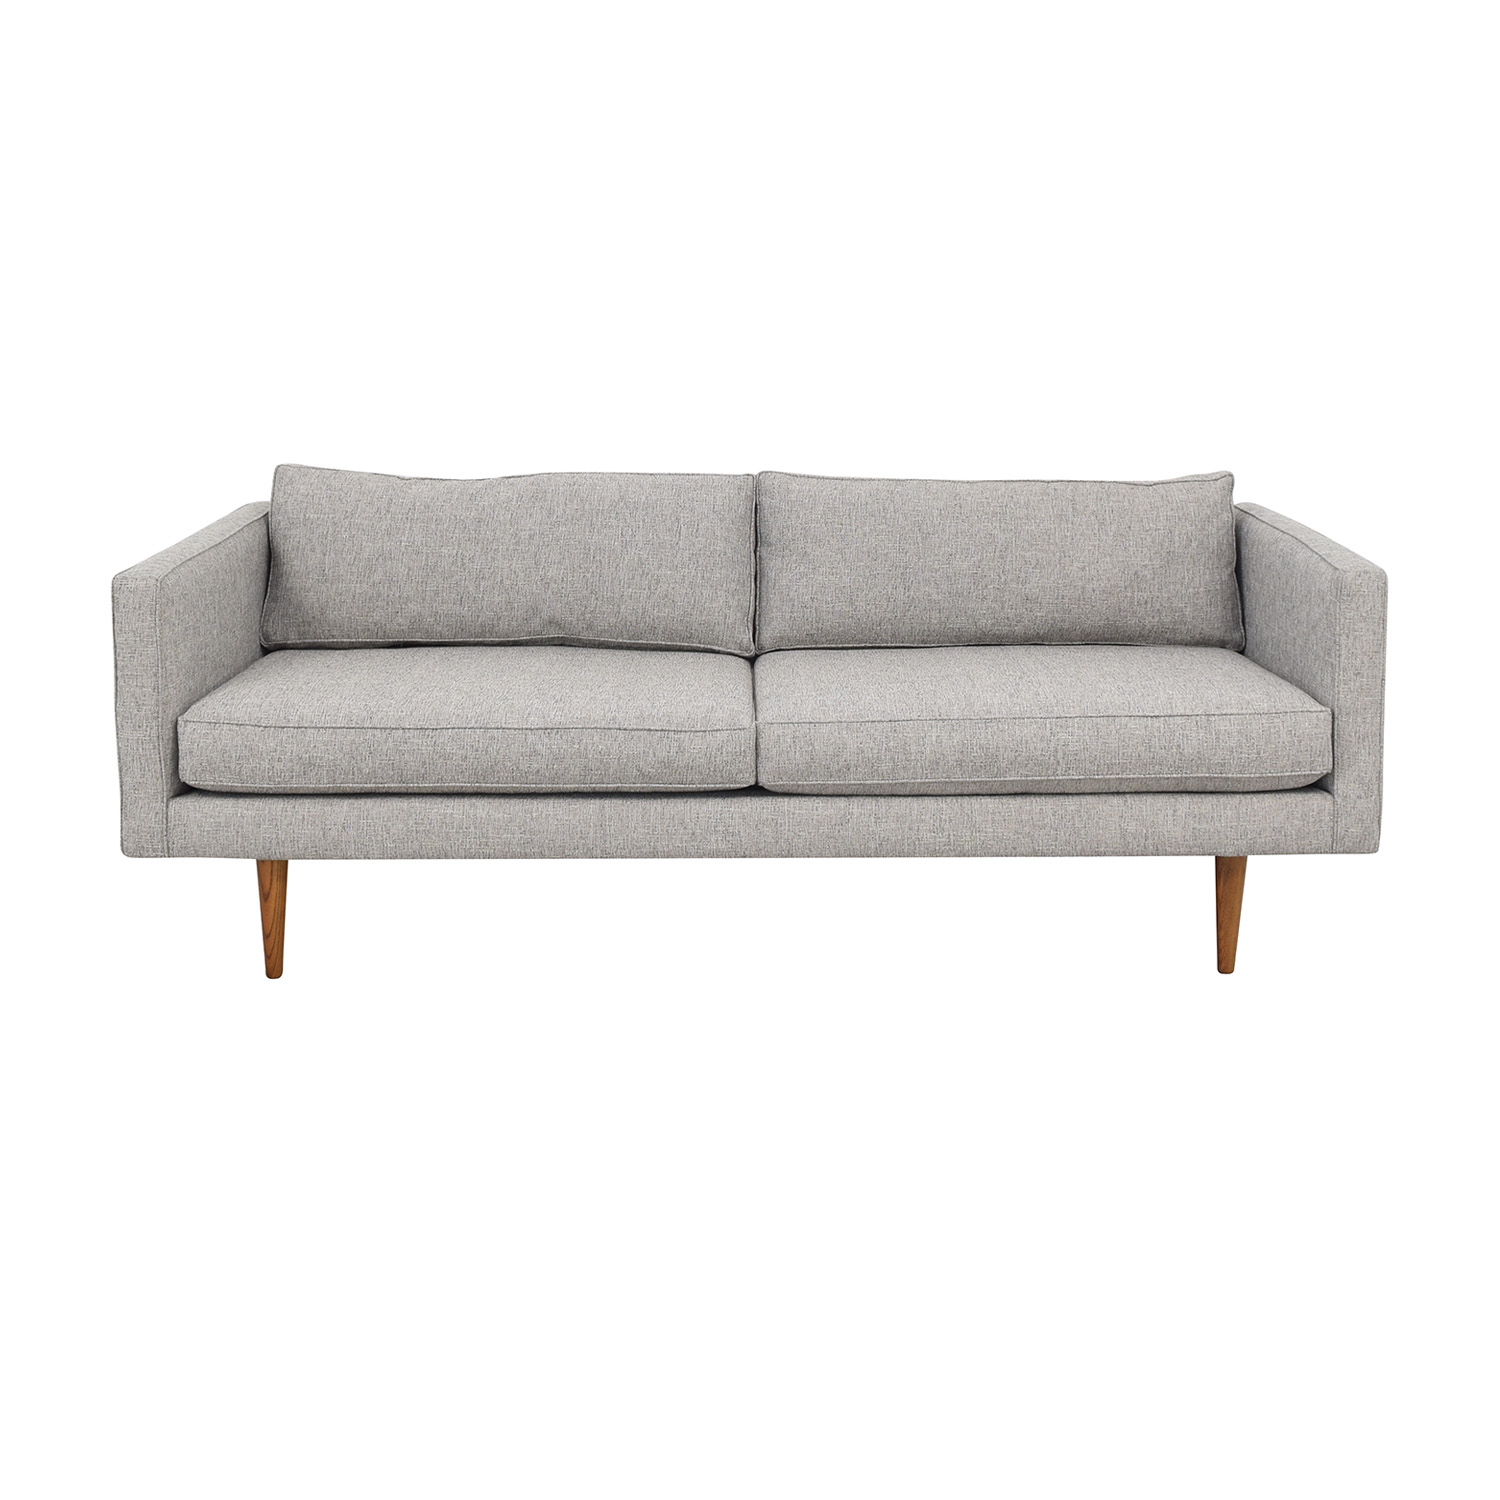 West Elm West Elm Monroe Mid-Century Sofa coupon